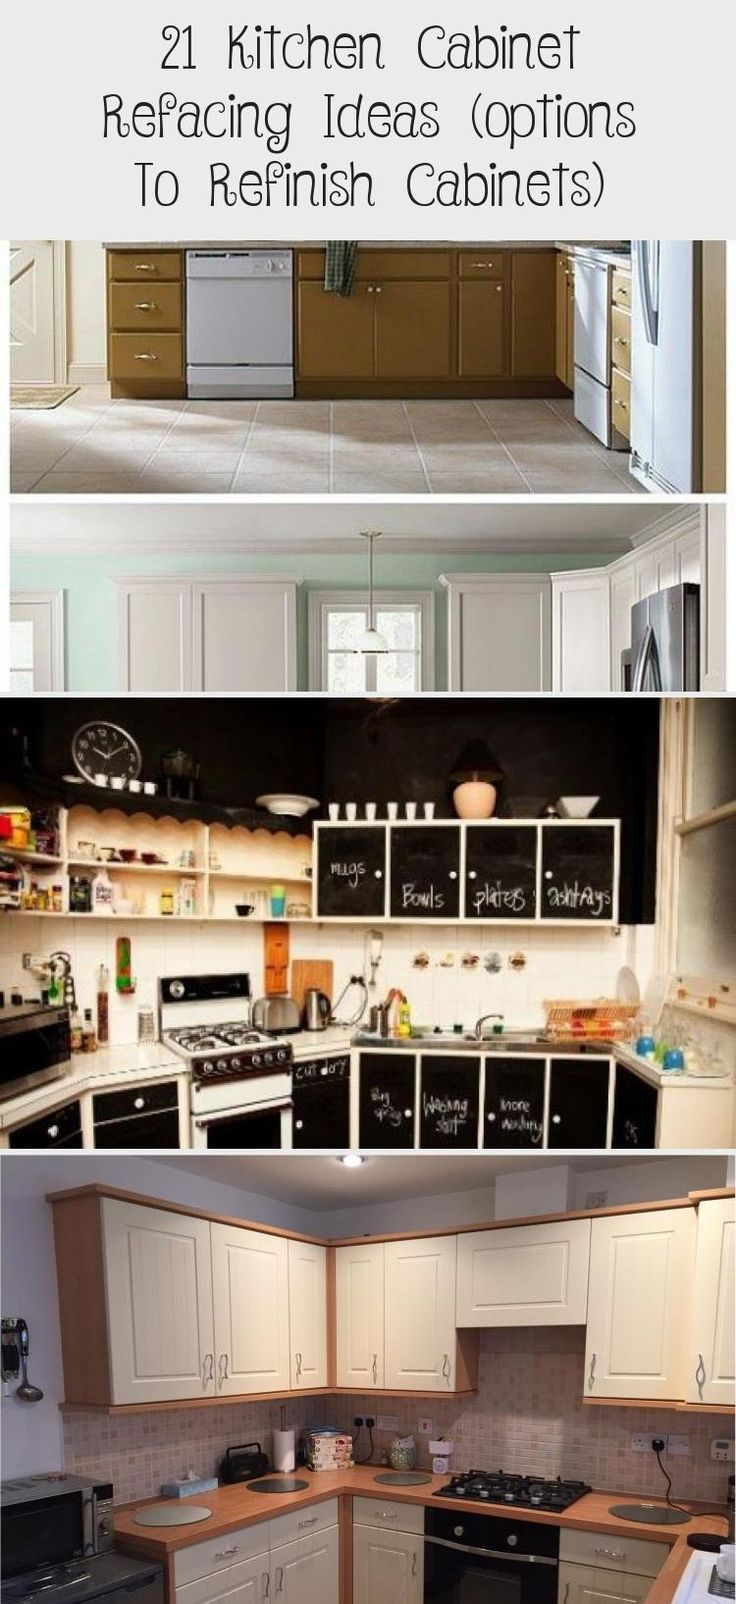 21 kitchen cabinet refacing ideas options to refinish cabinets refacing kitchen cabinets on kitchen cabinets refacing id=84405